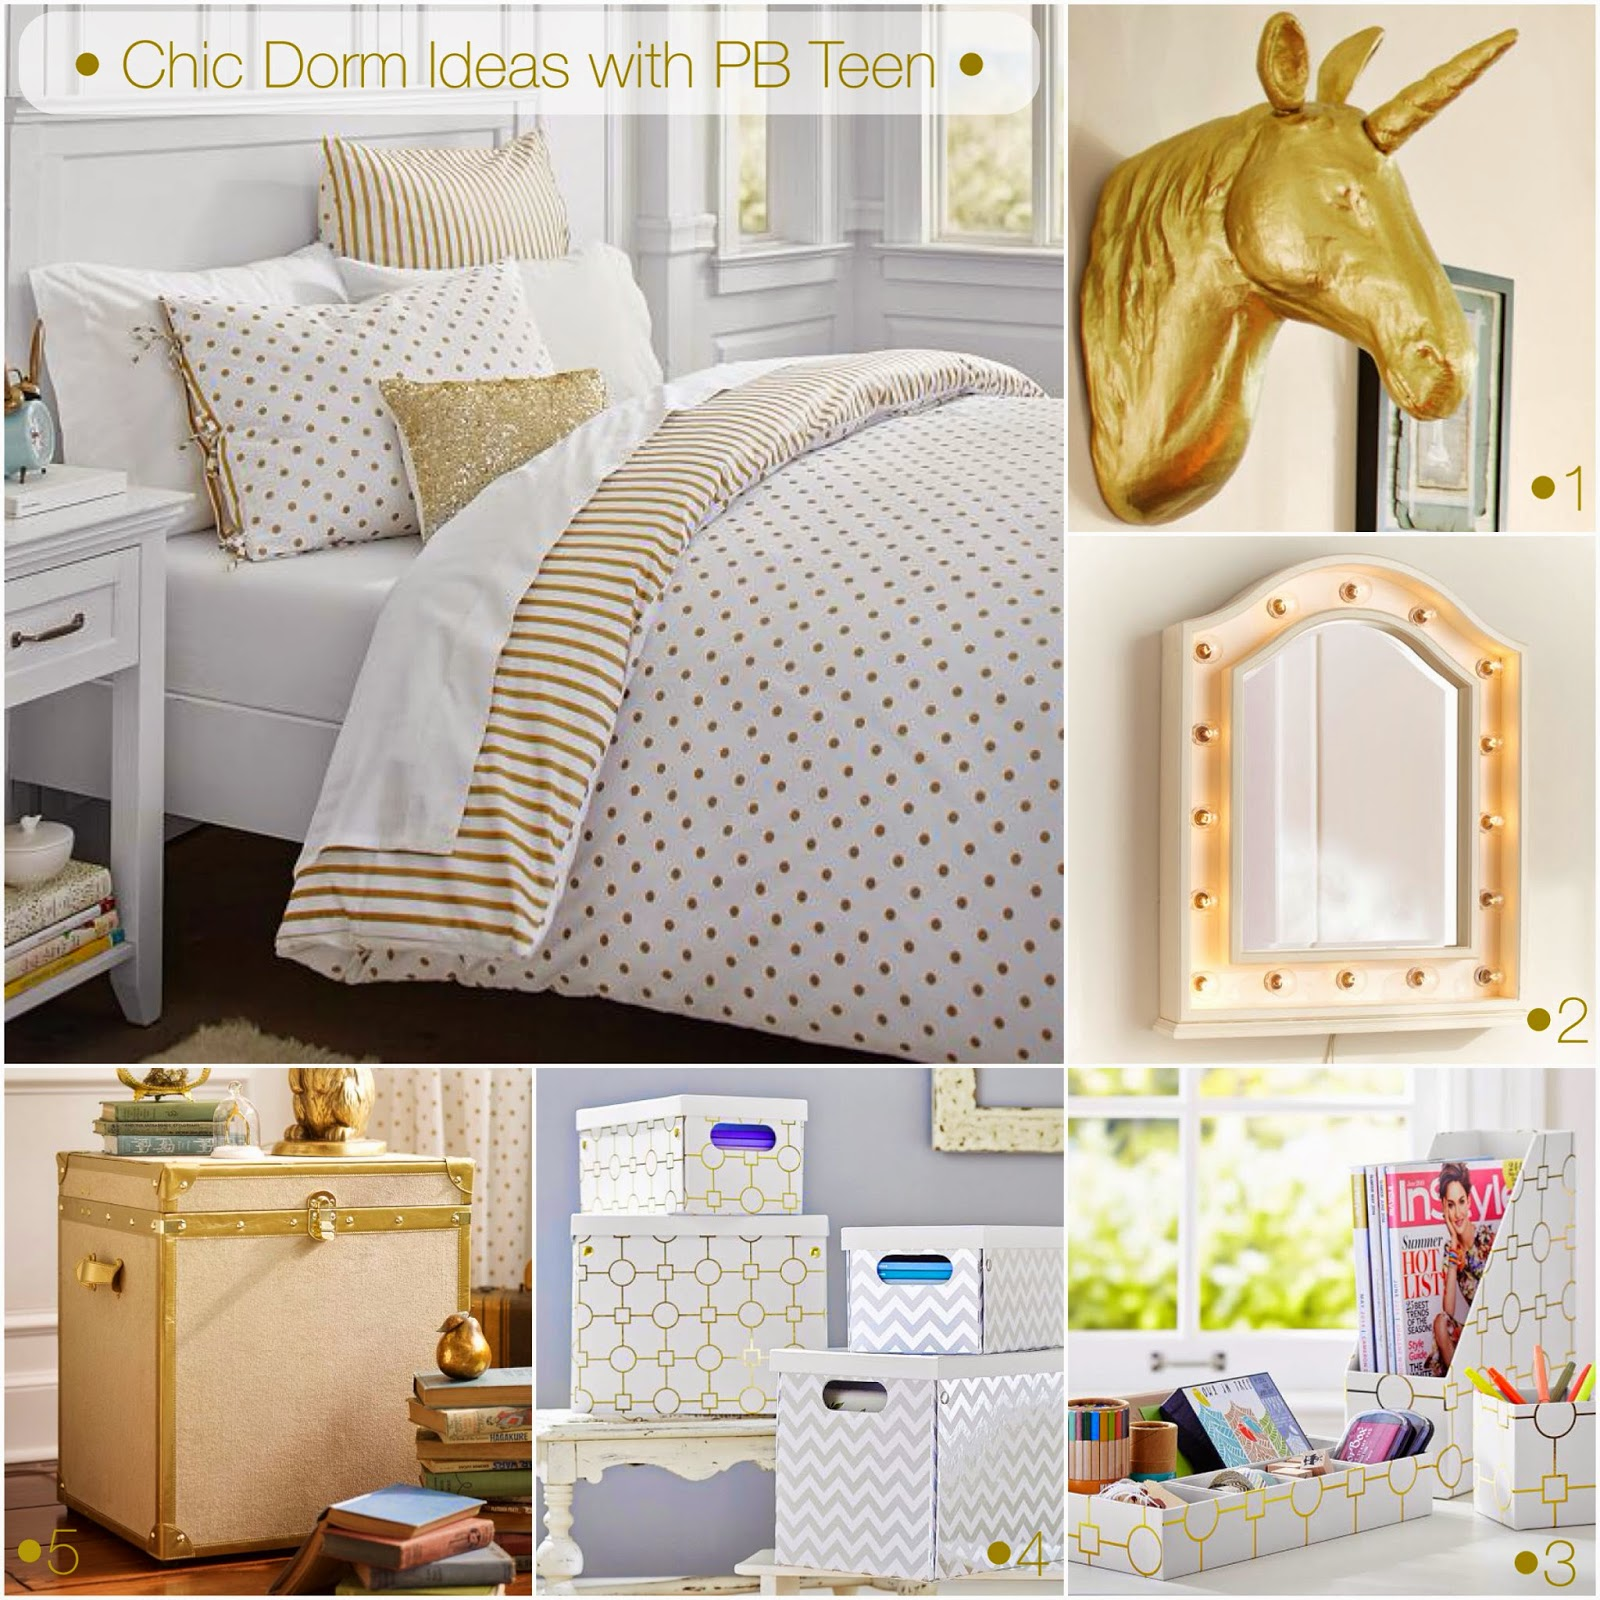 Chic Dorm Bedroom Do Over Lil Bits Of Chic By Paulina Mo